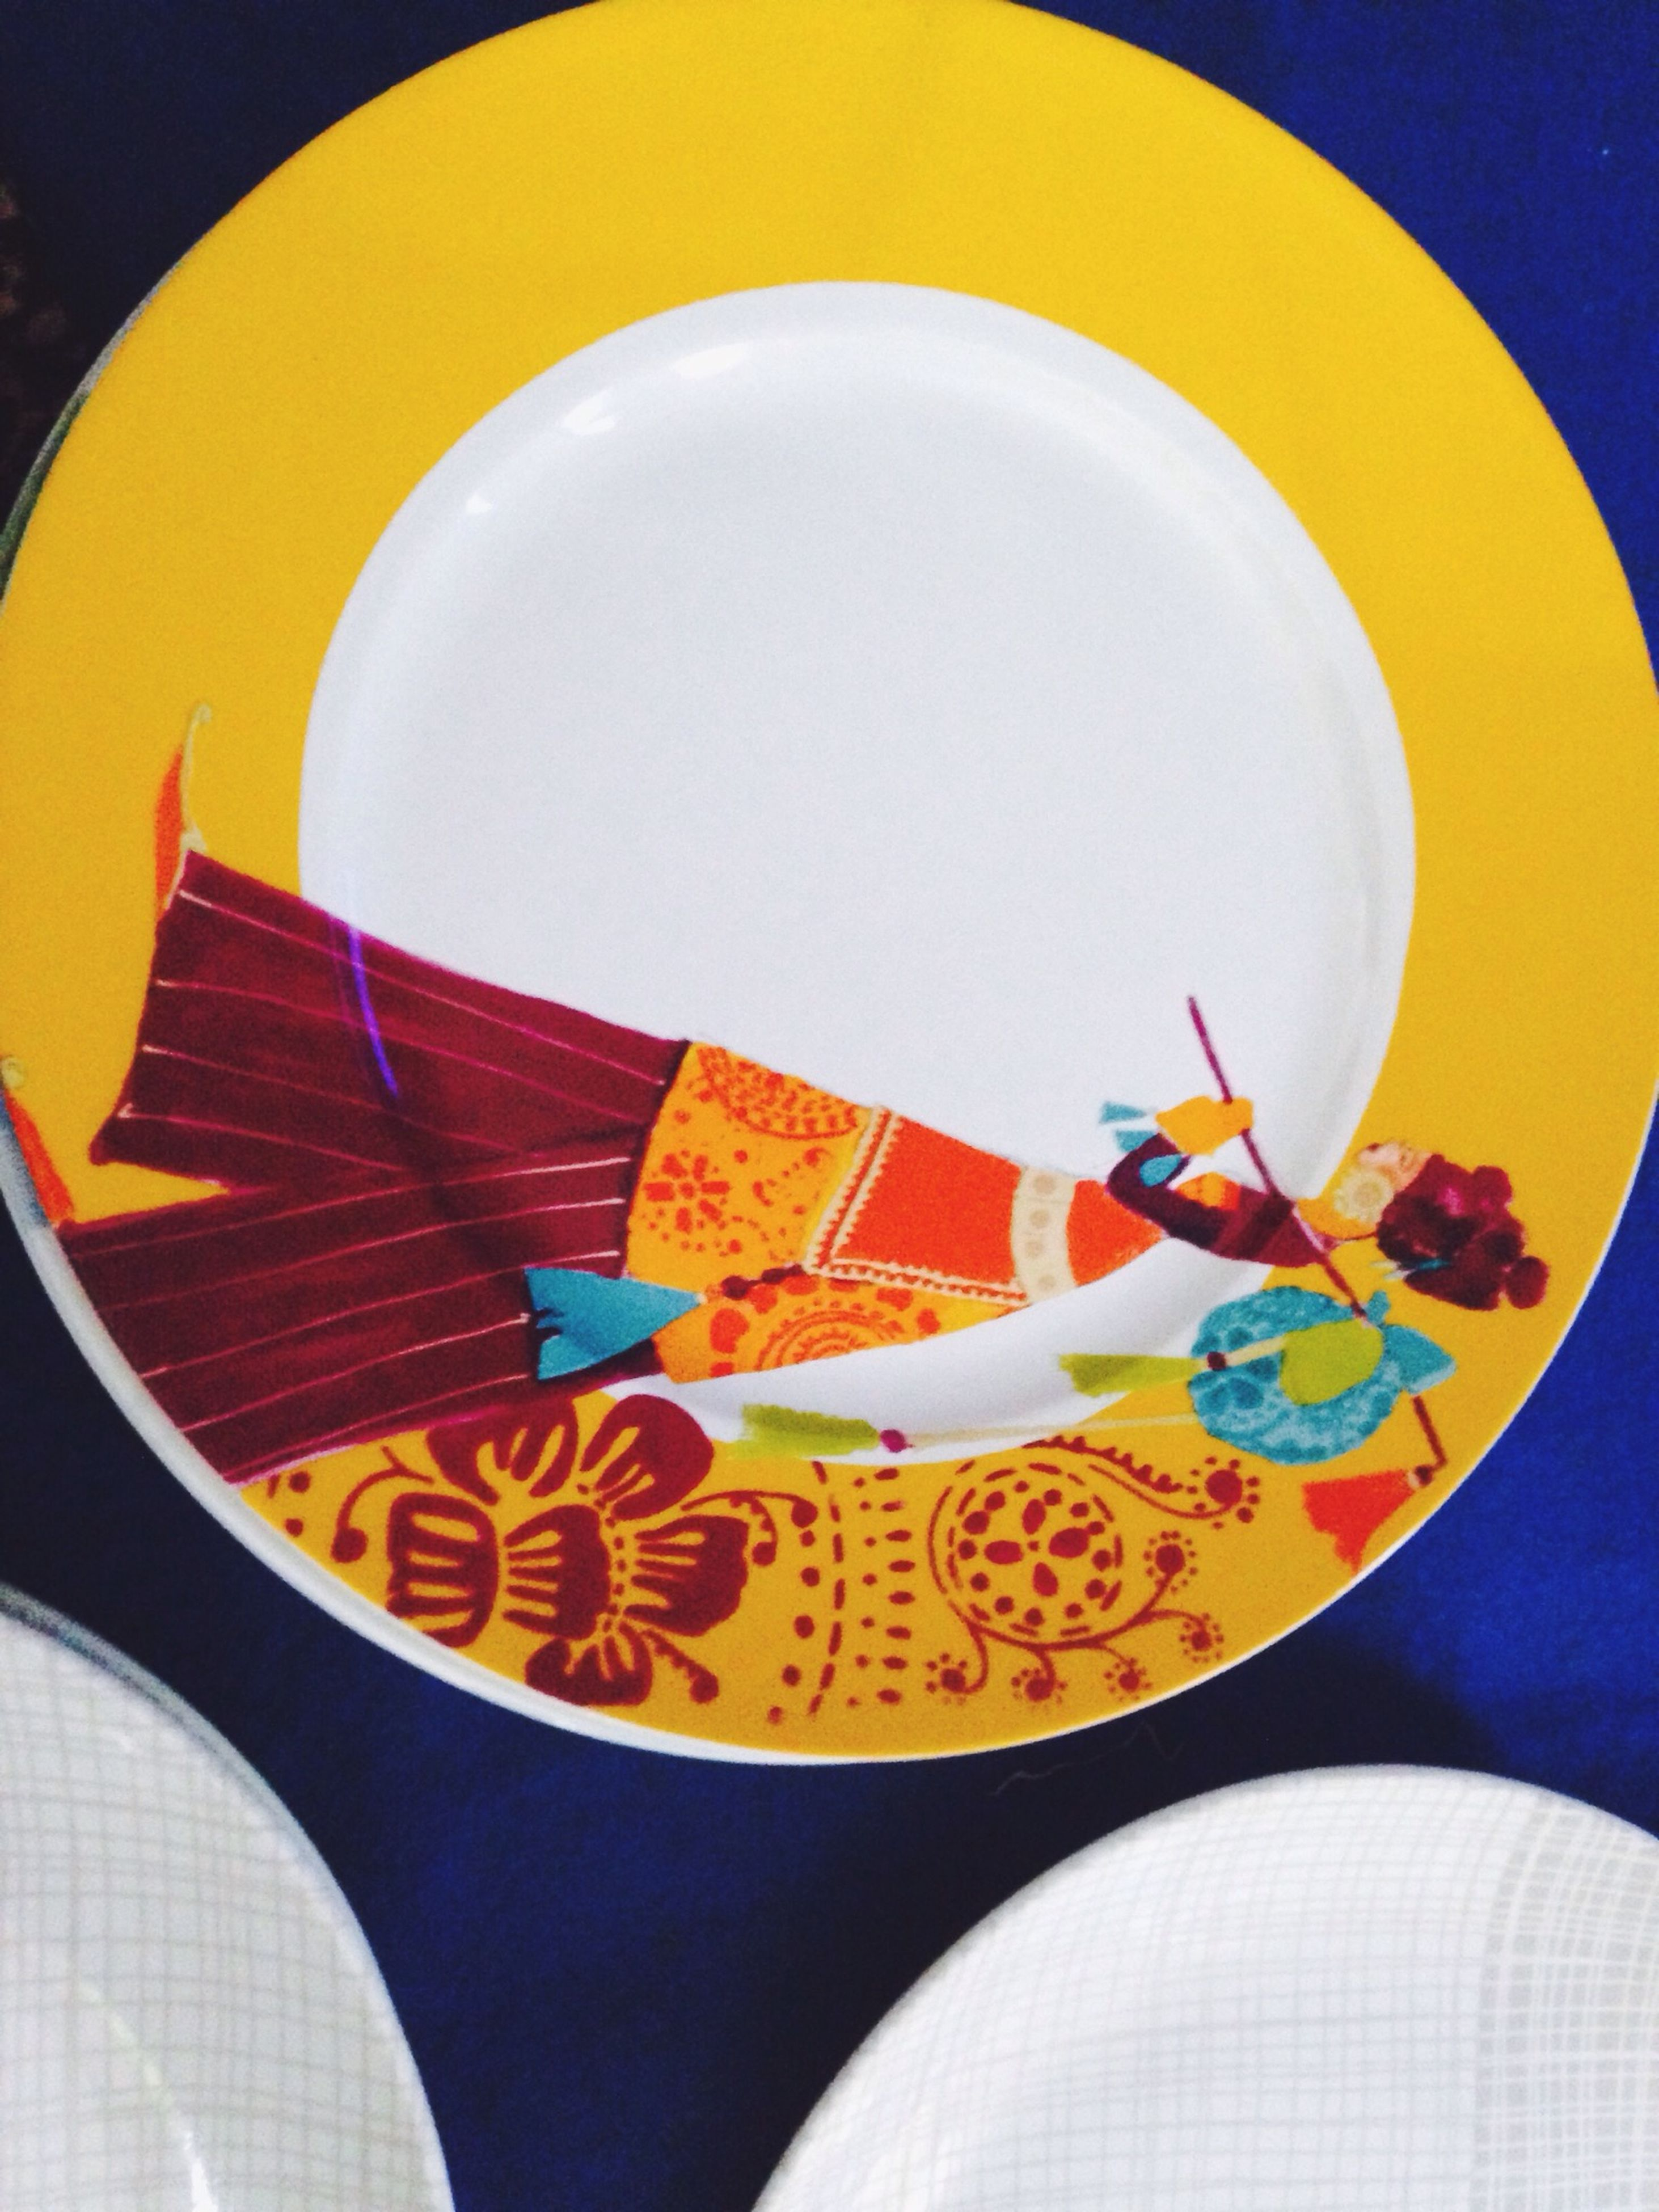 indoors, still life, blue, multi colored, yellow, circle, table, close-up, plate, creativity, high angle view, art and craft, no people, directly above, food and drink, pattern, art, bowl, studio shot, design